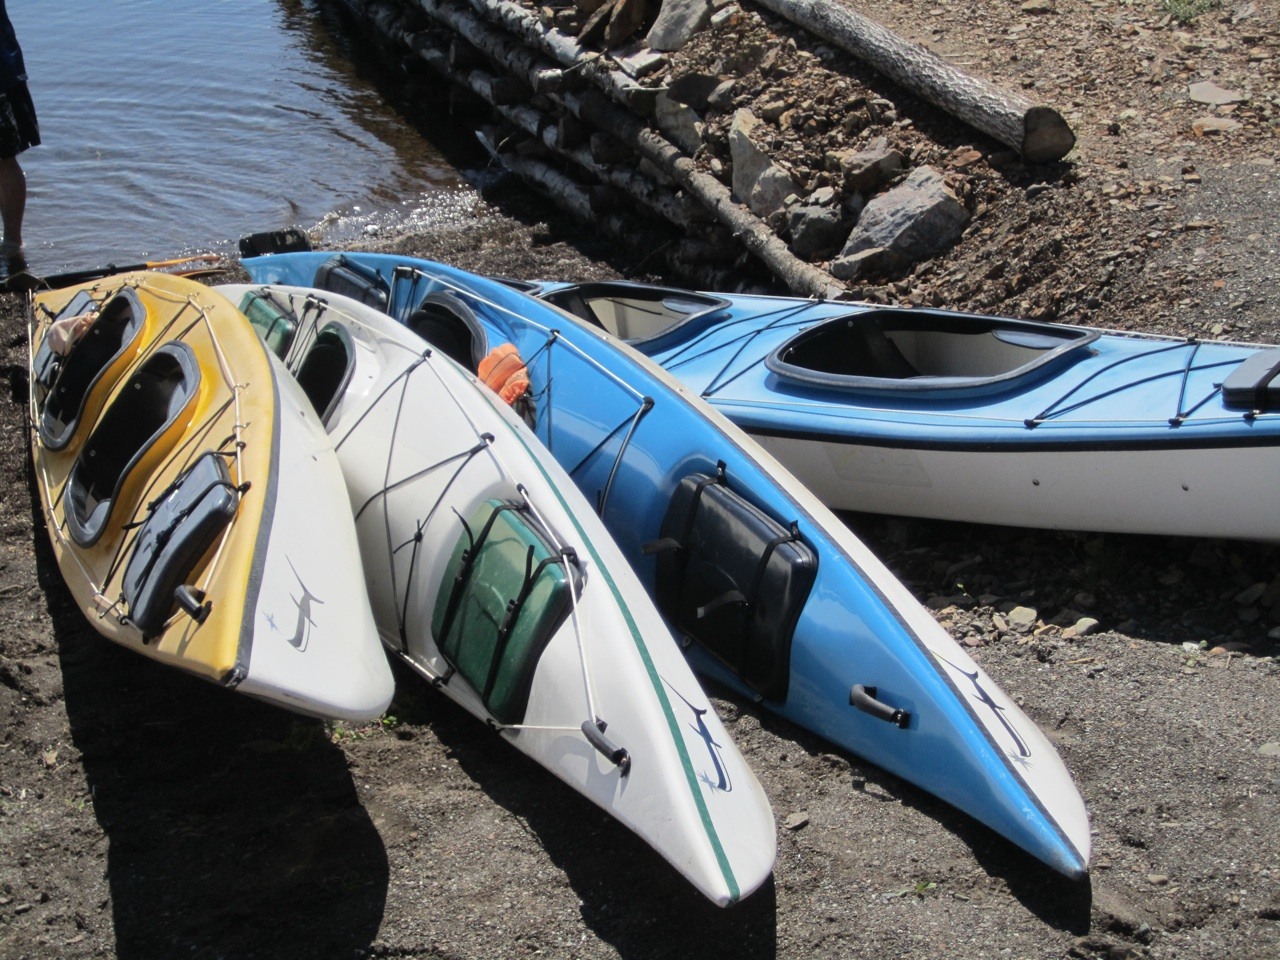 Sea Knife Kayaks Waiting For Someone To Take Them Into The Water.